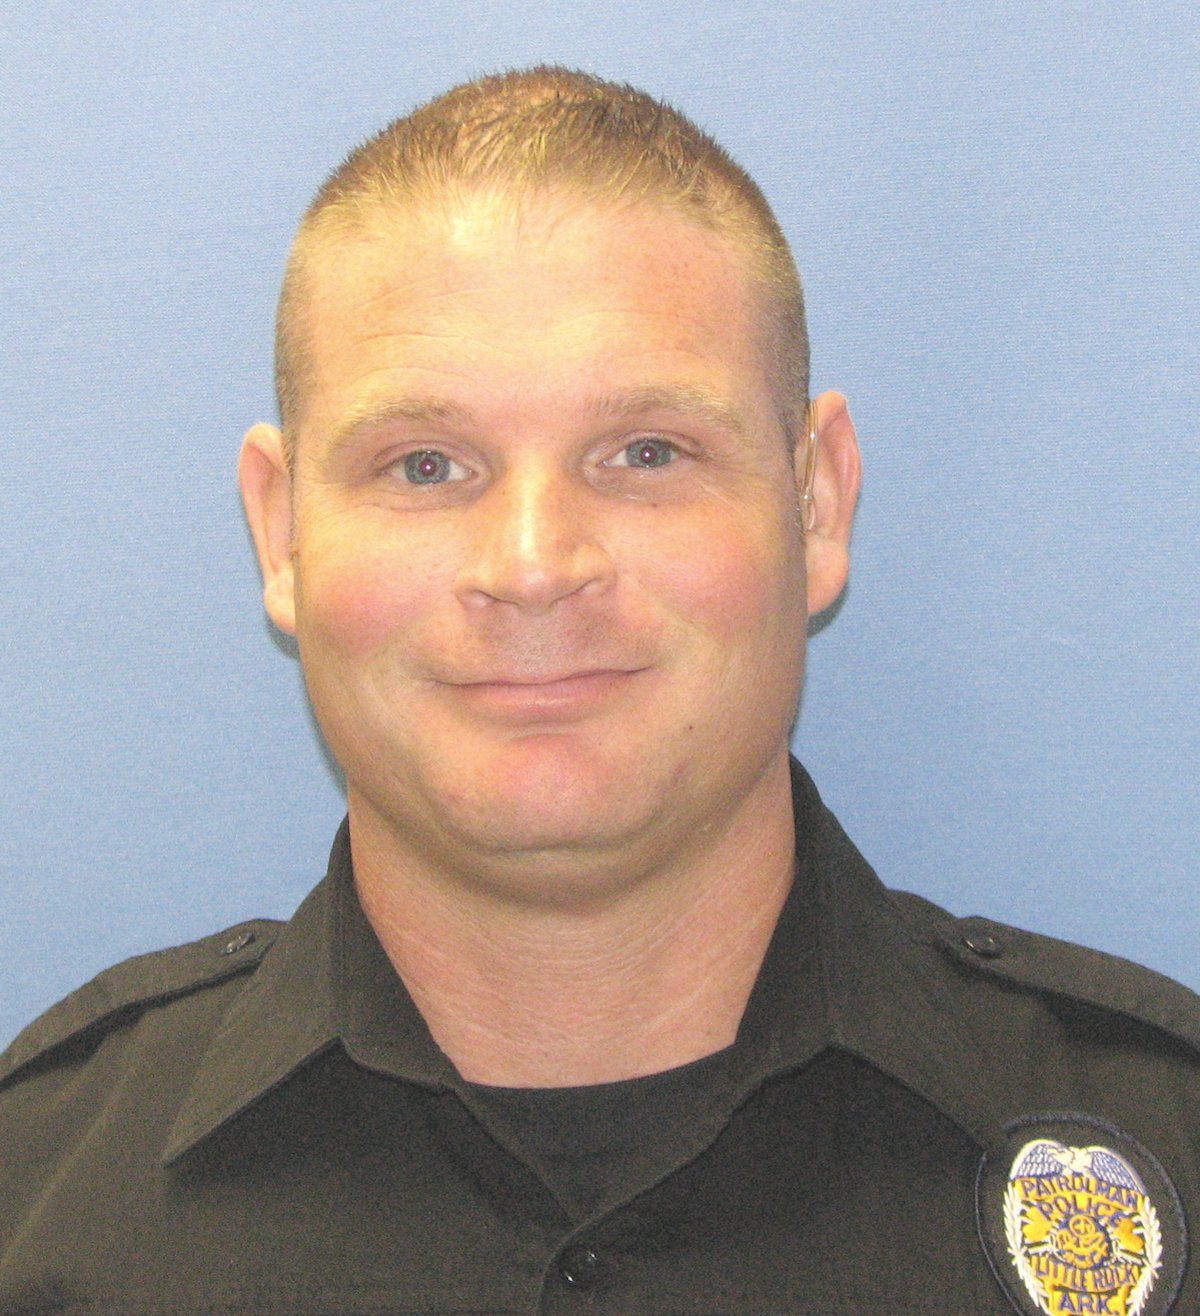 Little Rock Names Officer In Fatal Shooting, Releases 911